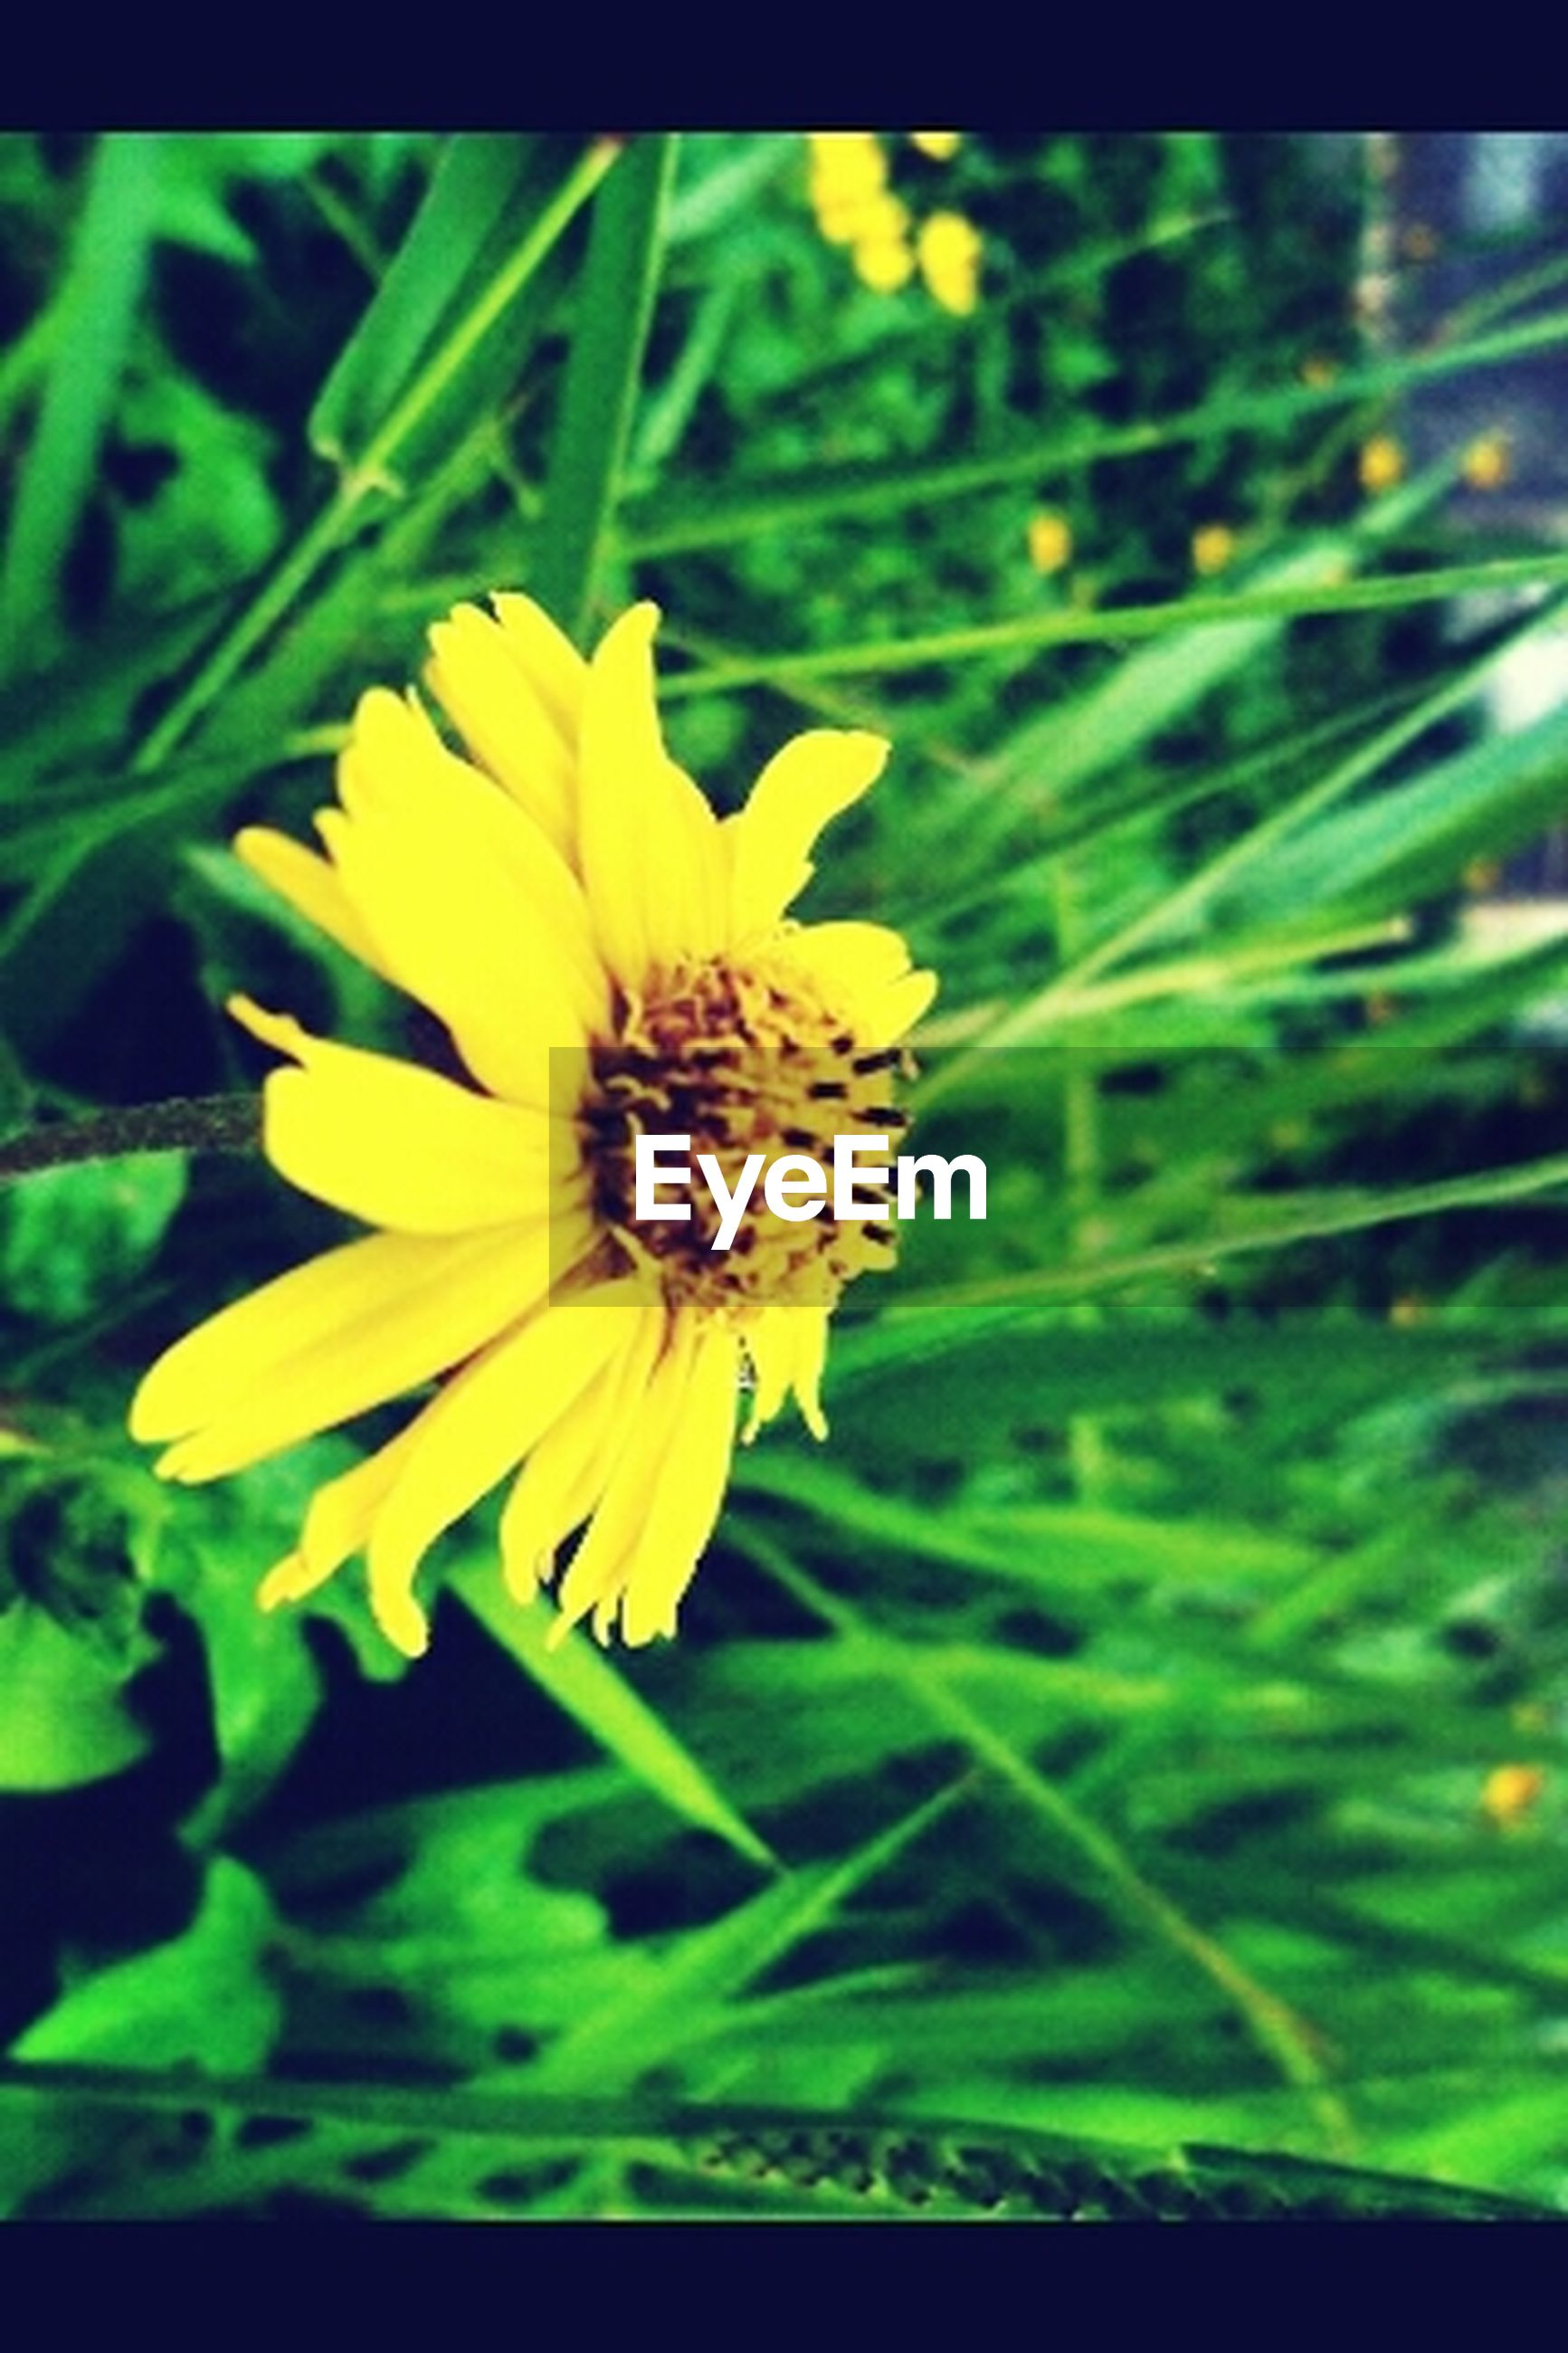 flower, yellow, petal, freshness, fragility, flower head, growth, beauty in nature, focus on foreground, close-up, blooming, nature, plant, single flower, in bloom, pollen, field, selective focus, outdoors, park - man made space